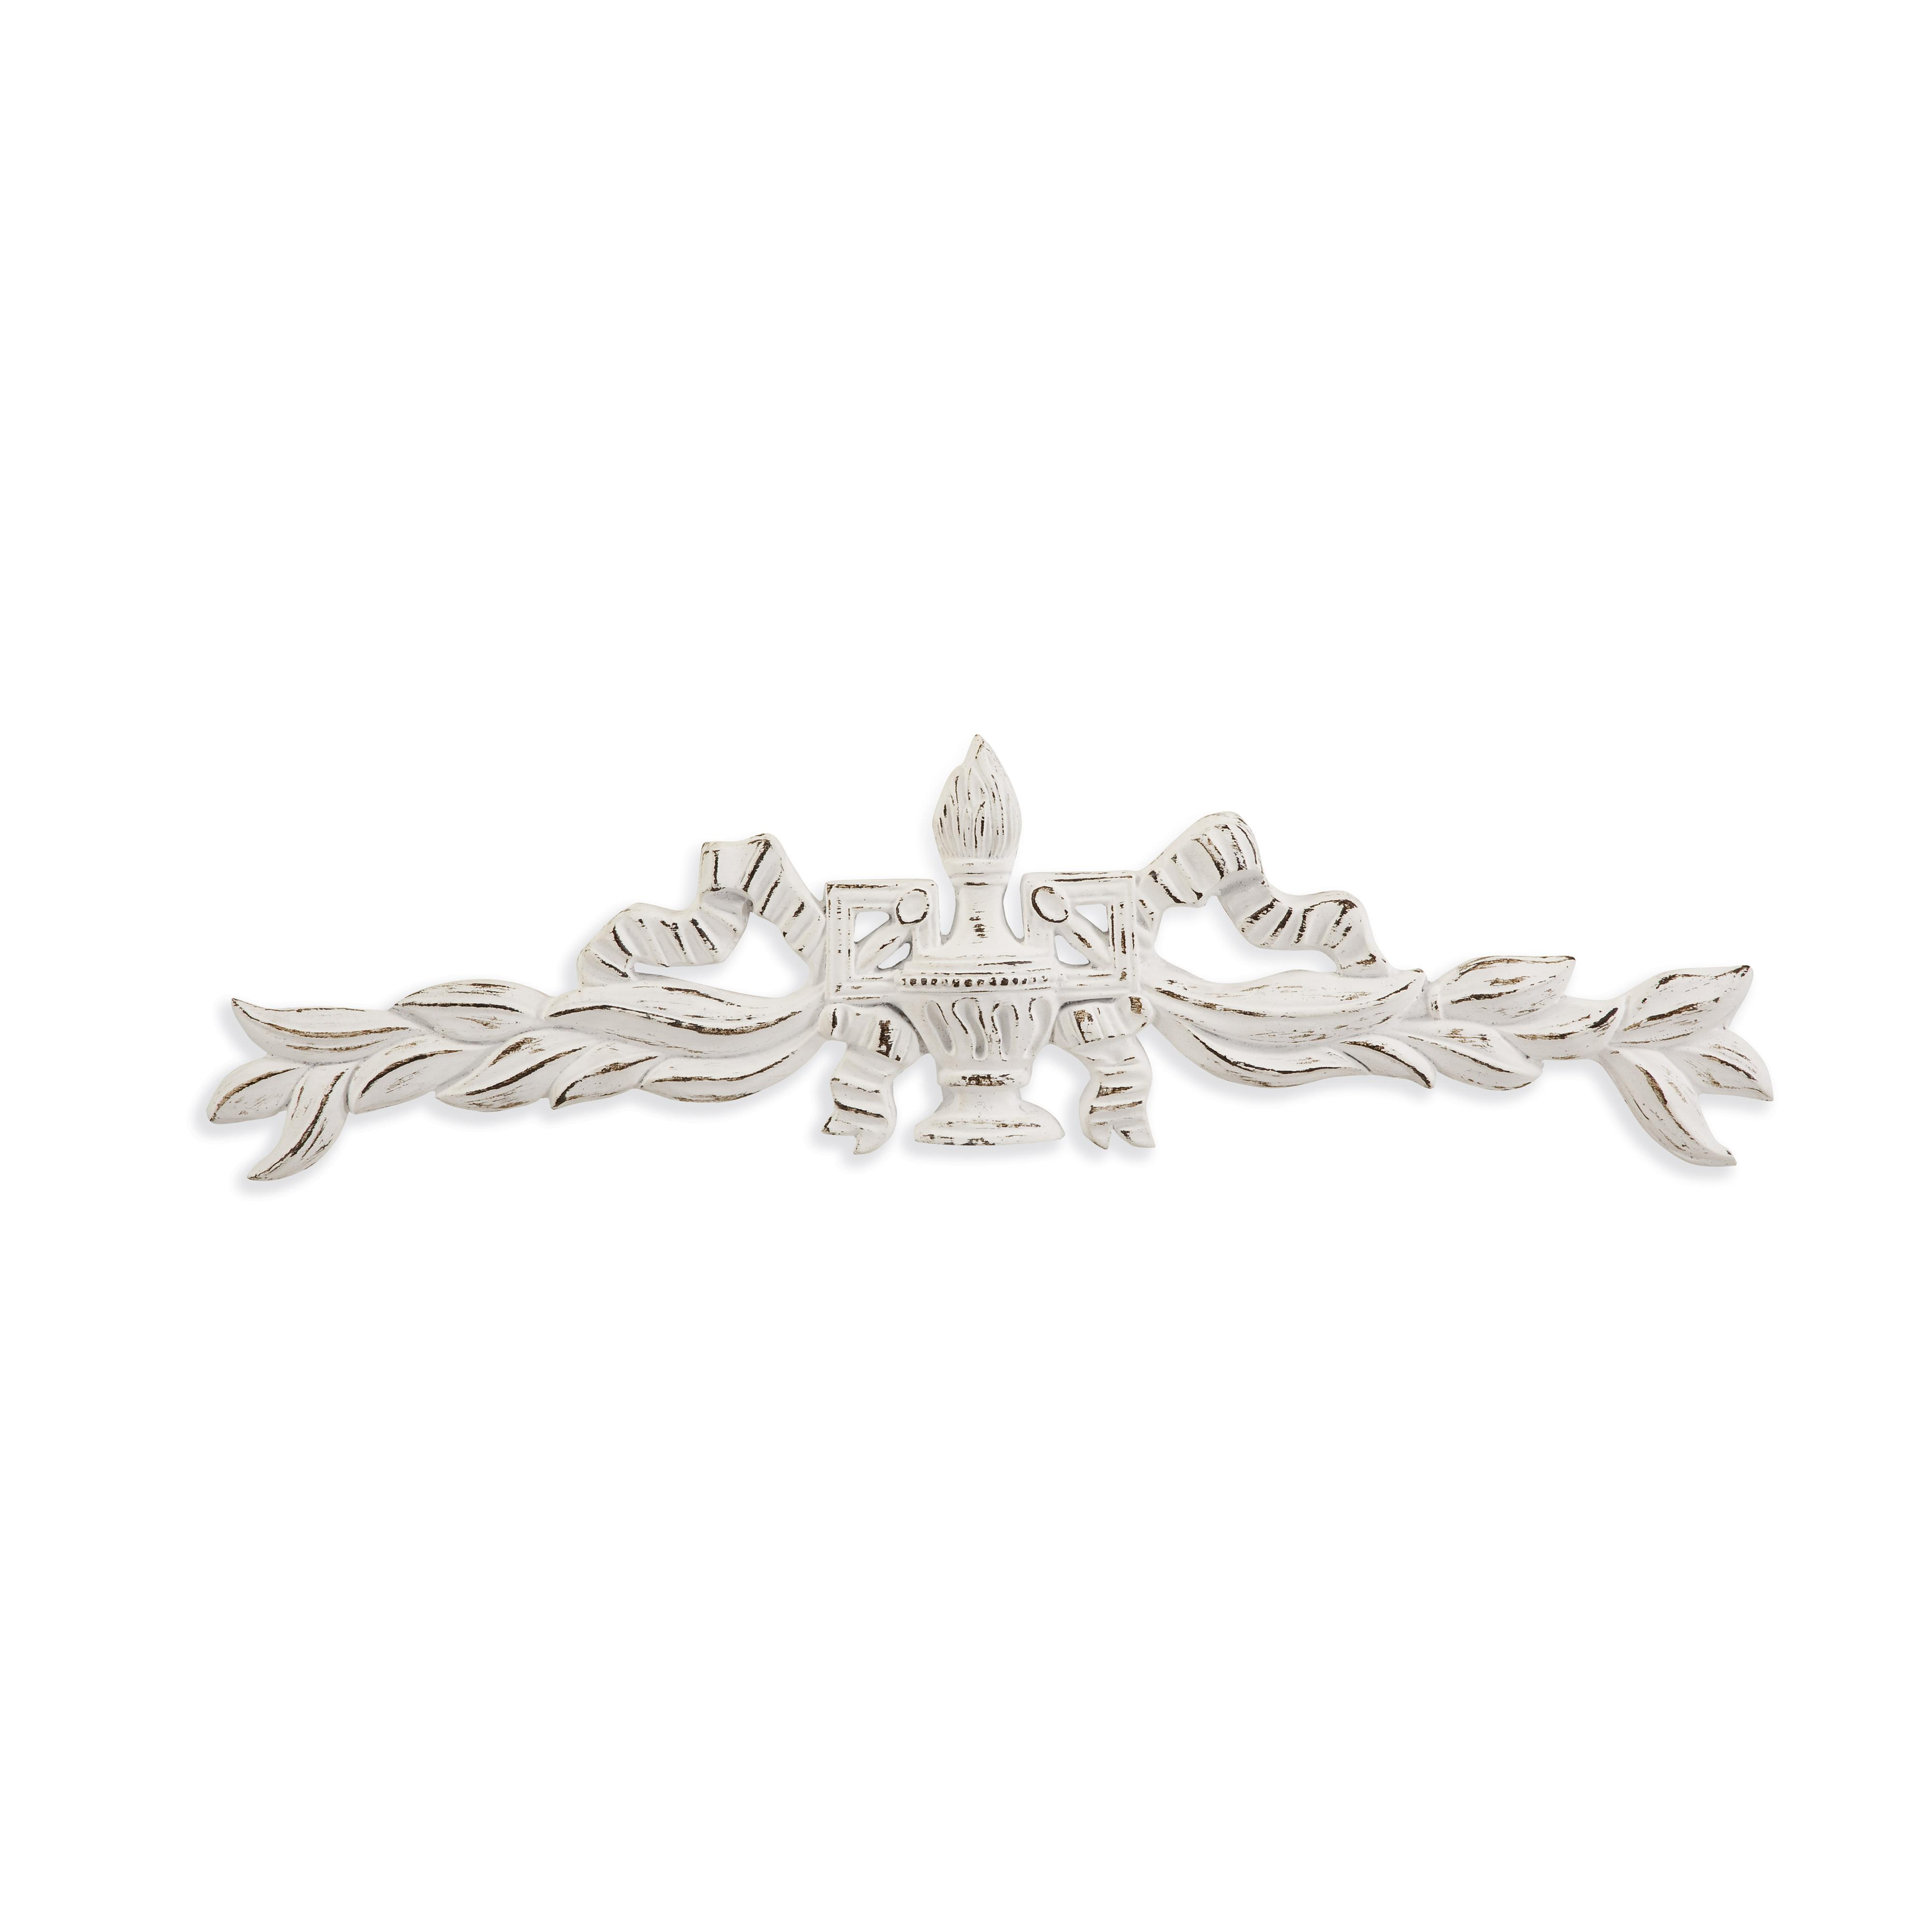 Belgian Luxe Weathered Urn Wall Hanging by Bassett Mirror at Alison Craig Home Furnishings